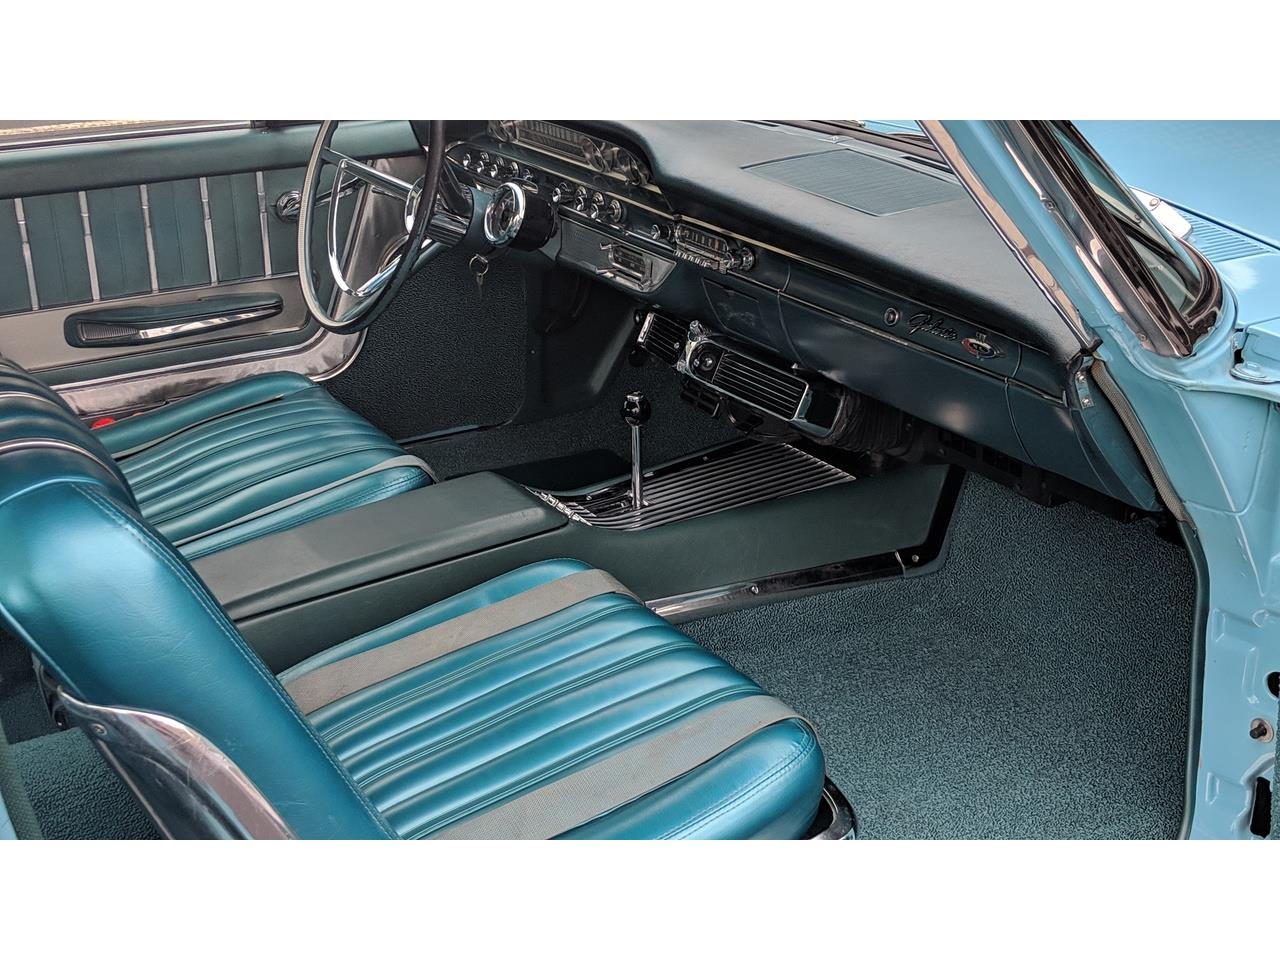 Large Picture of Classic '62 Ford Galaxie 500 XL located in North Pheonix Arizona Offered by a Private Seller - PQ6R